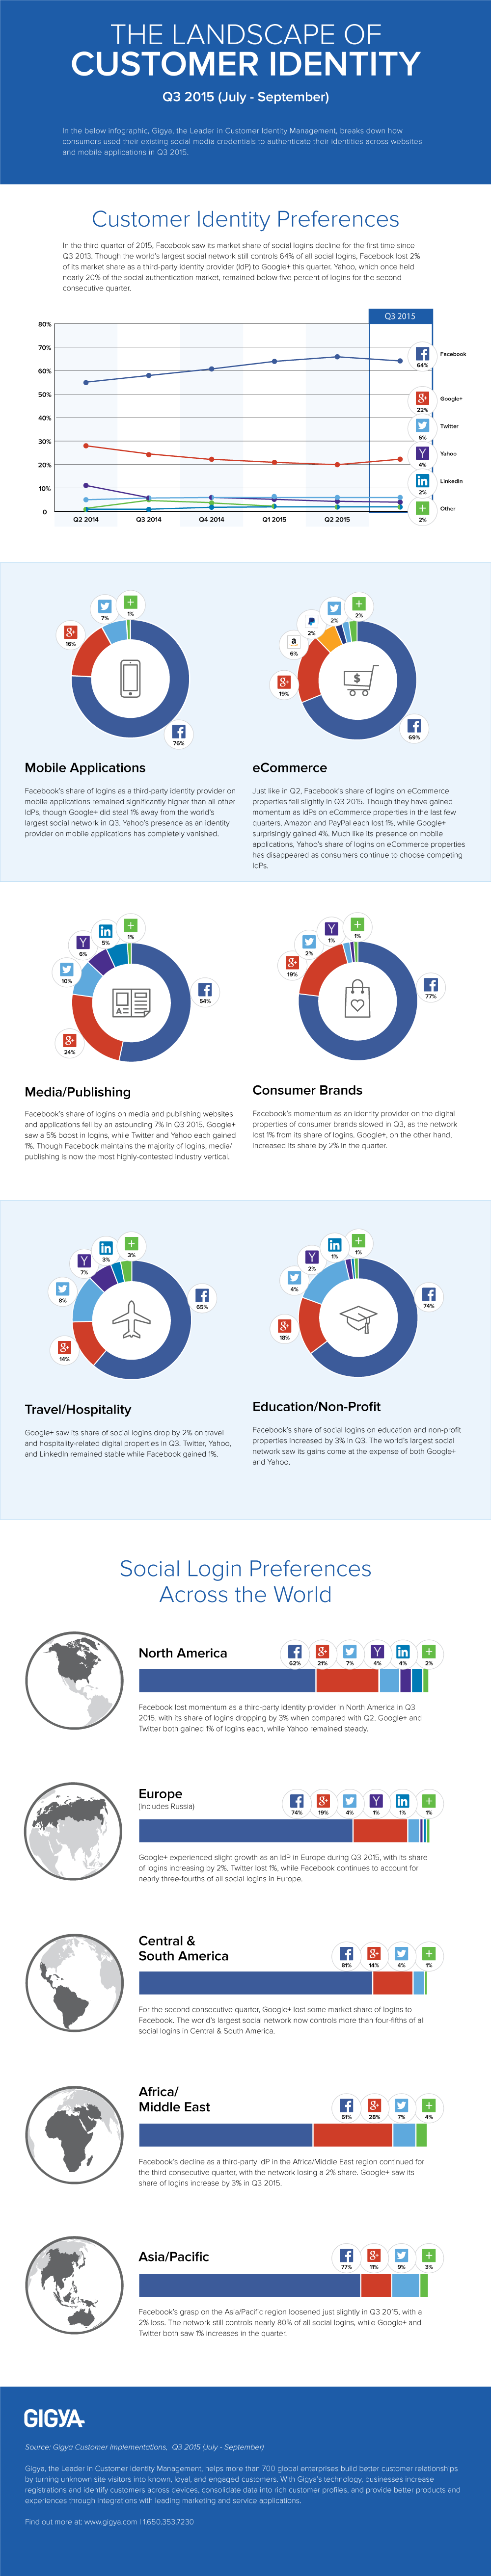 The Landscape of Customer Identity: Has Facebook Peaked? - #infographic